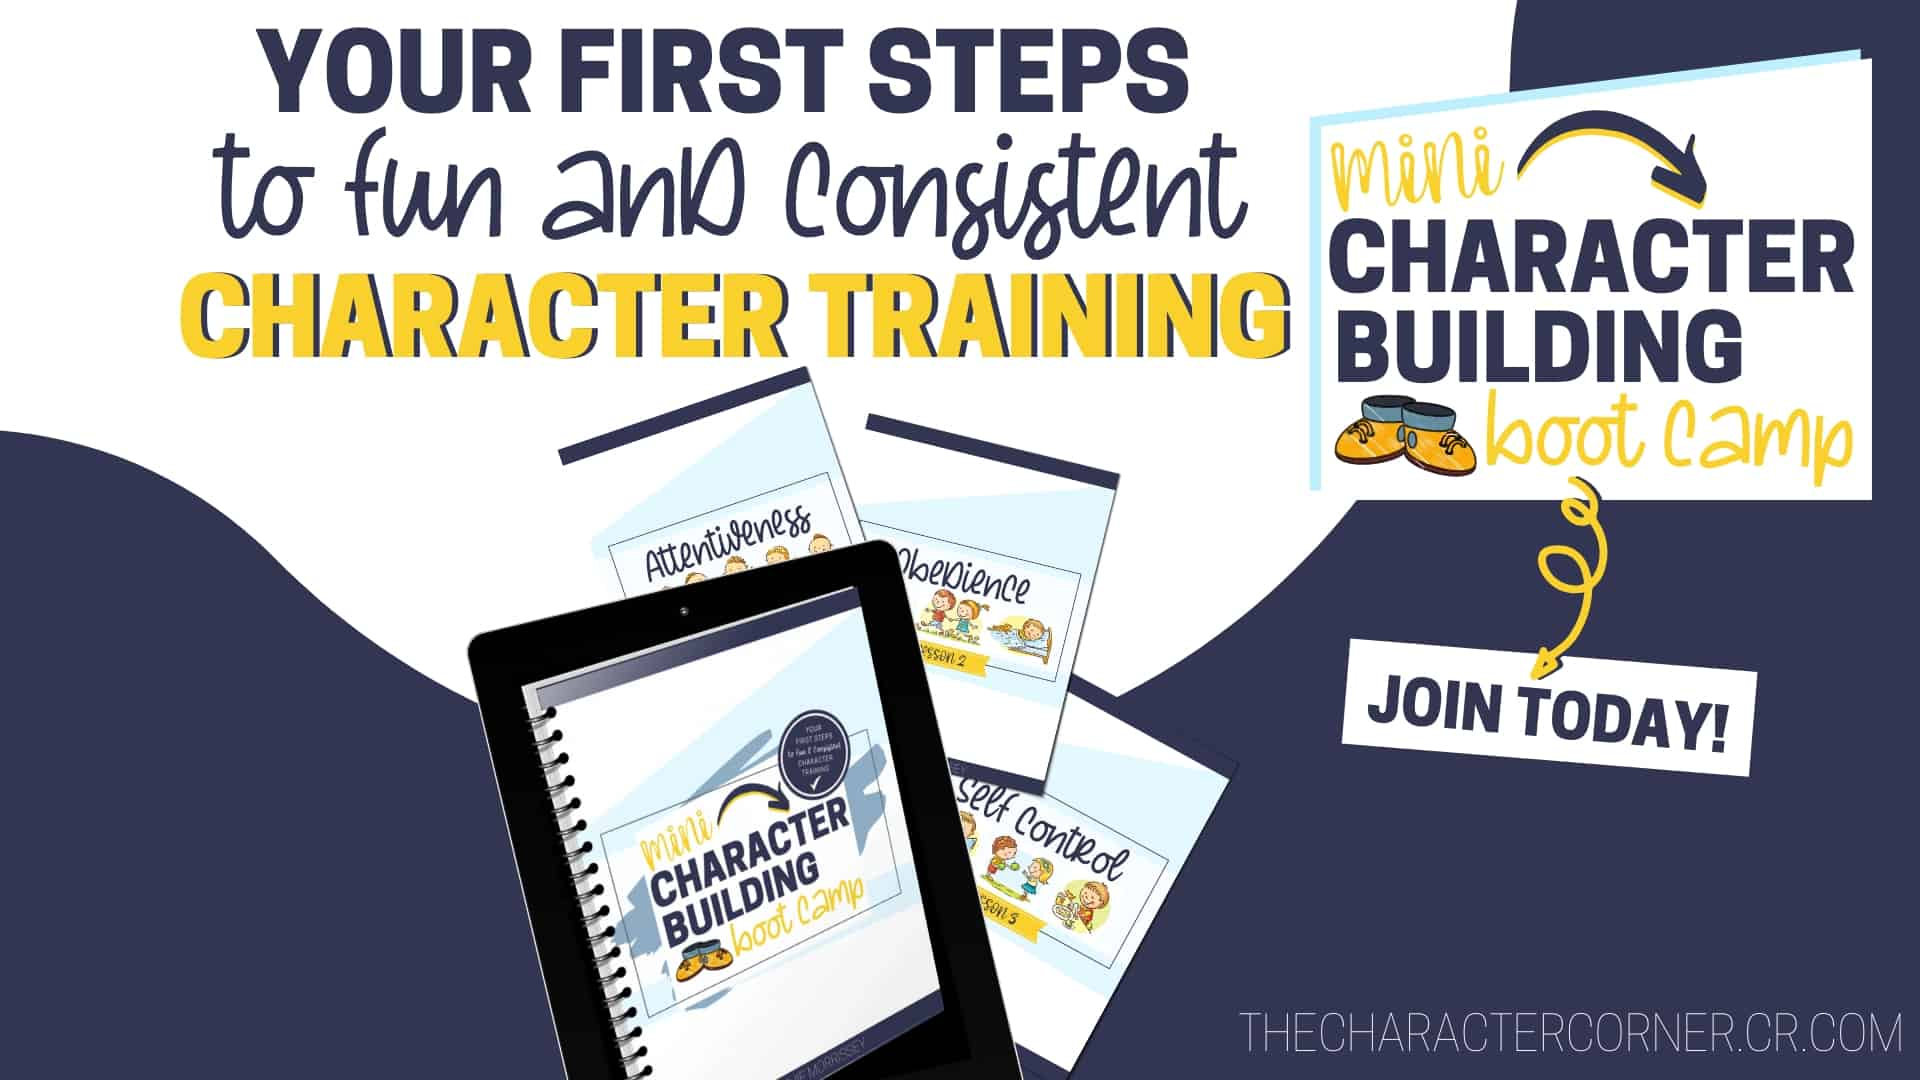 your first steps to fun and consistent character training